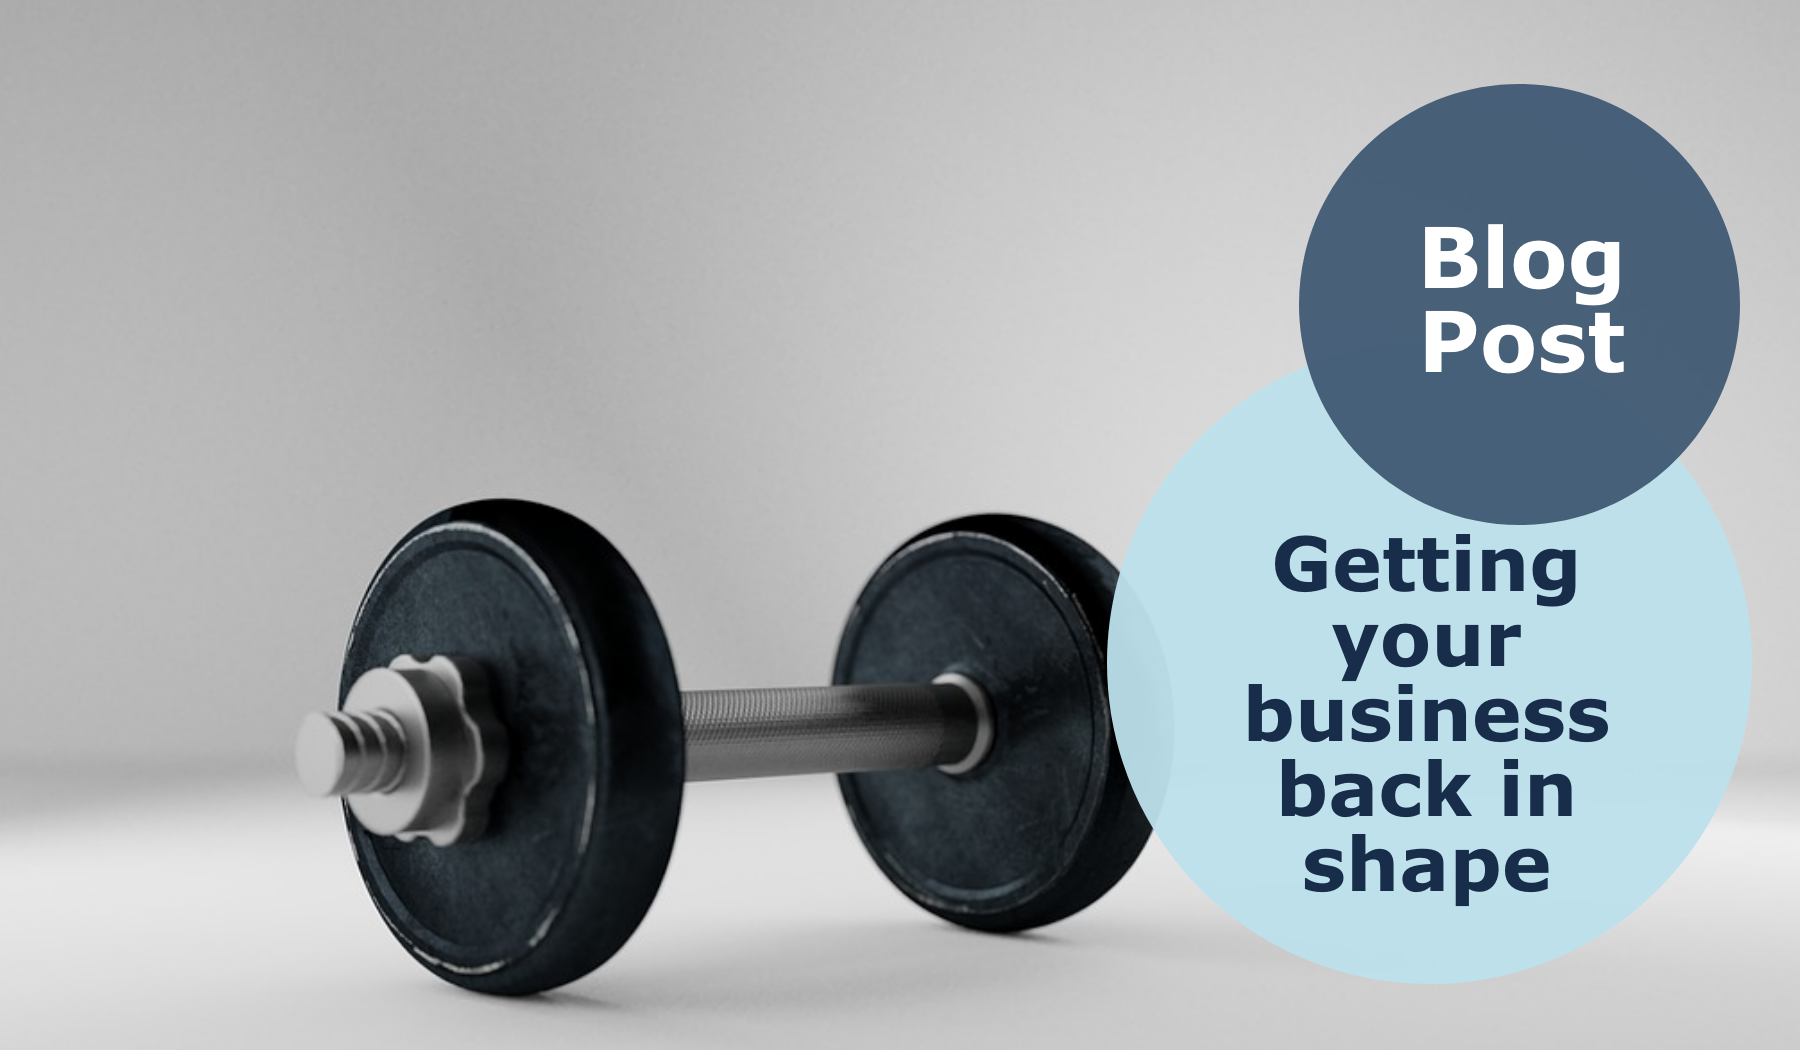 Getting your business back in shape